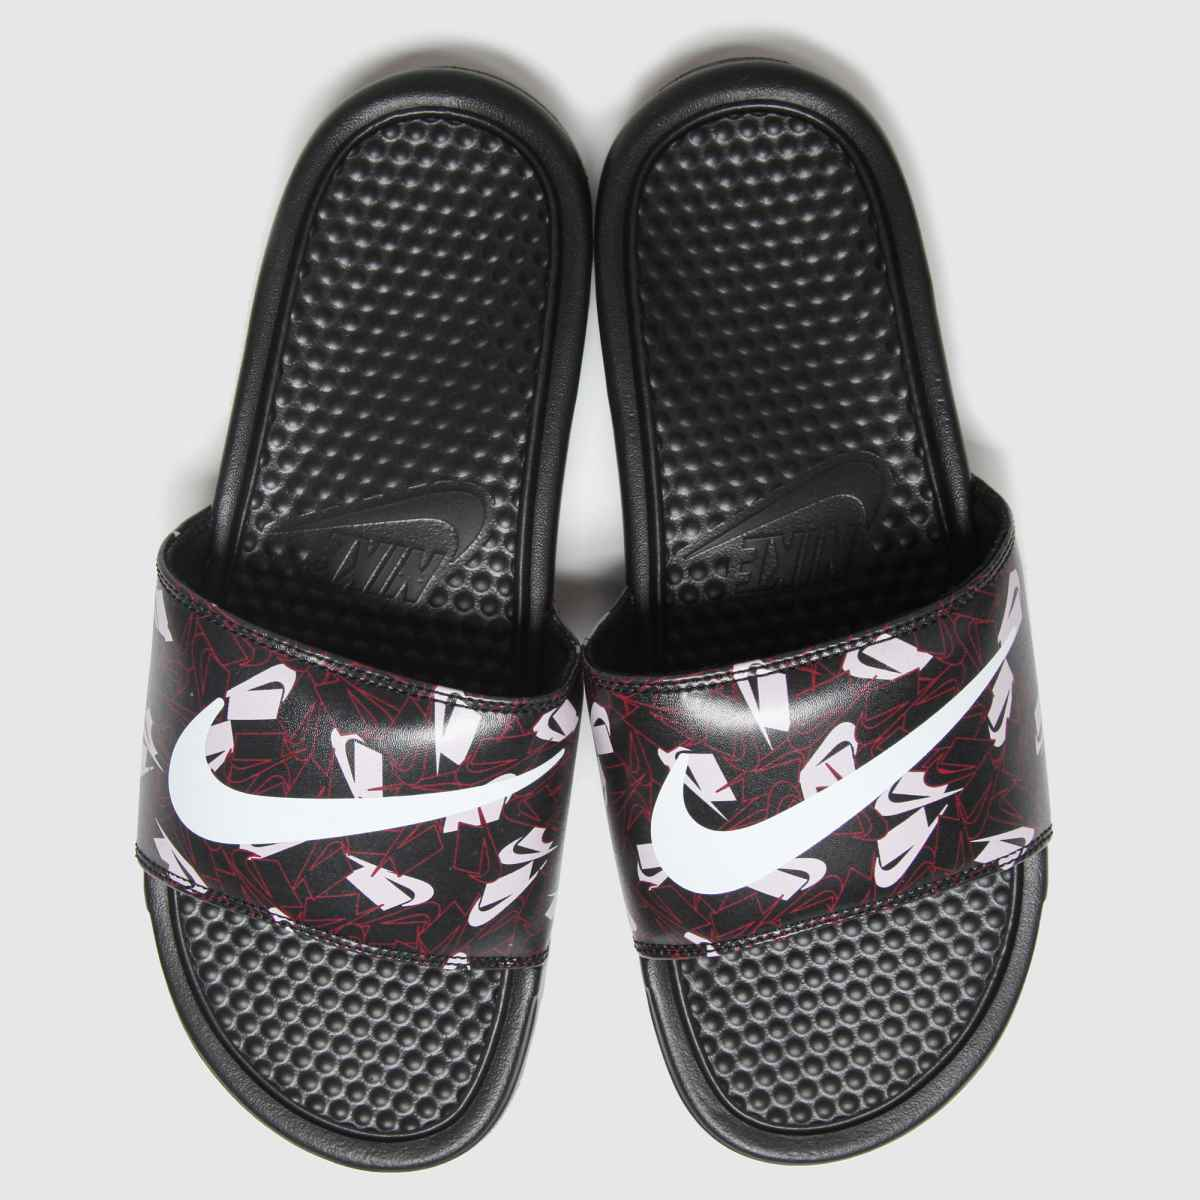 Nike Nike Black & Purple Benassi Jdi Sandals